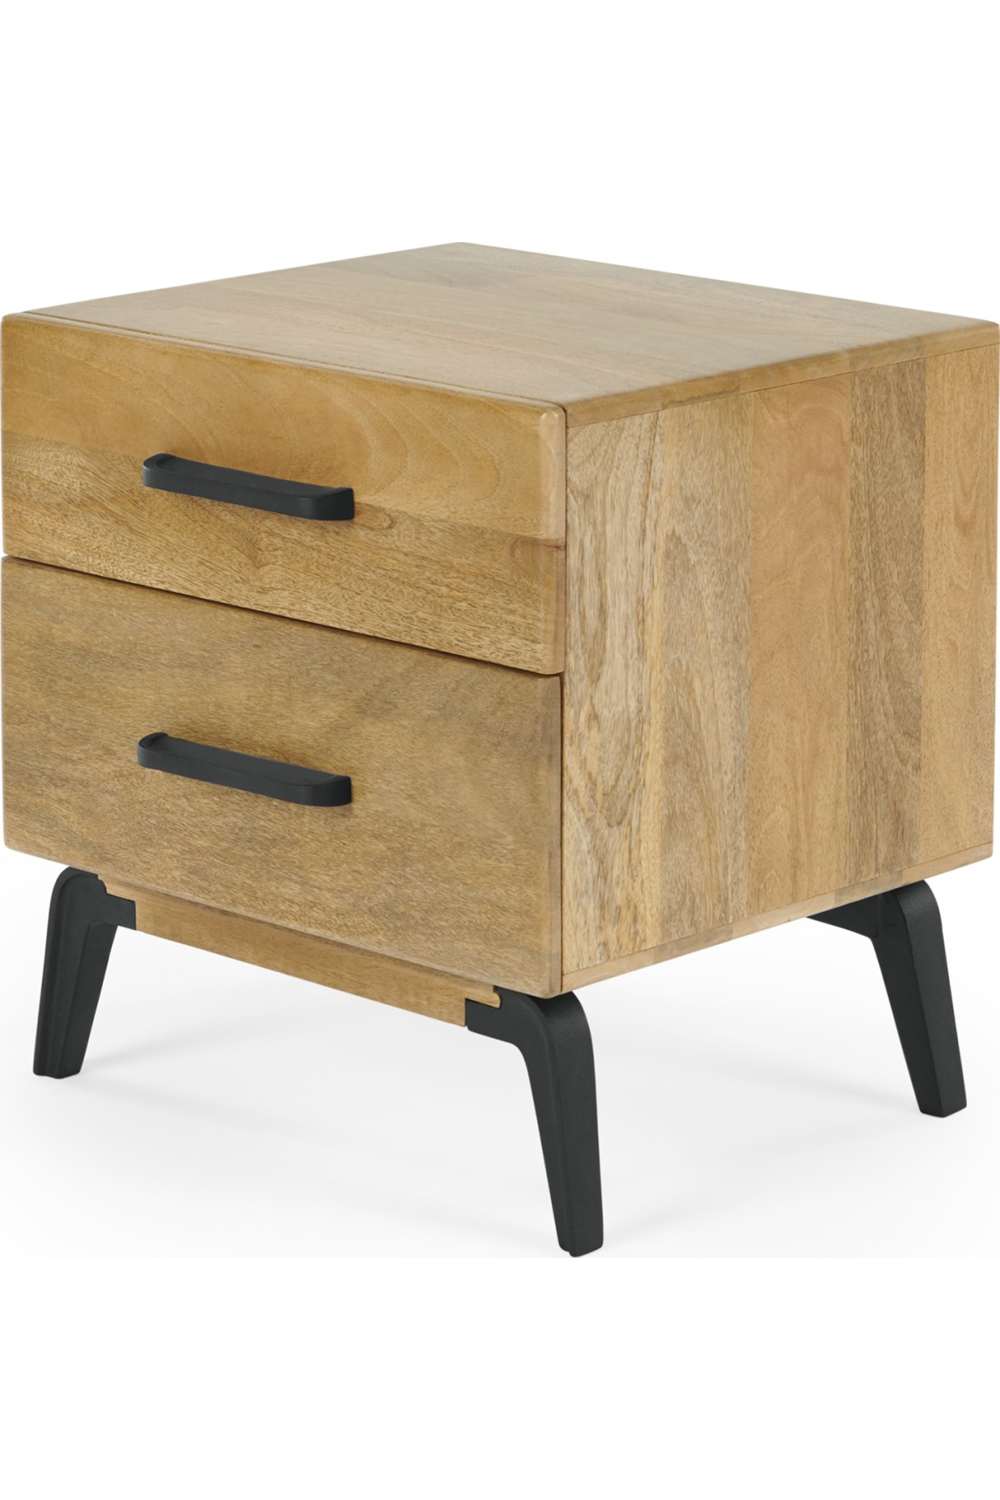 Wood And Metal Bedside Table: MADE Mango Wood Bedside Table